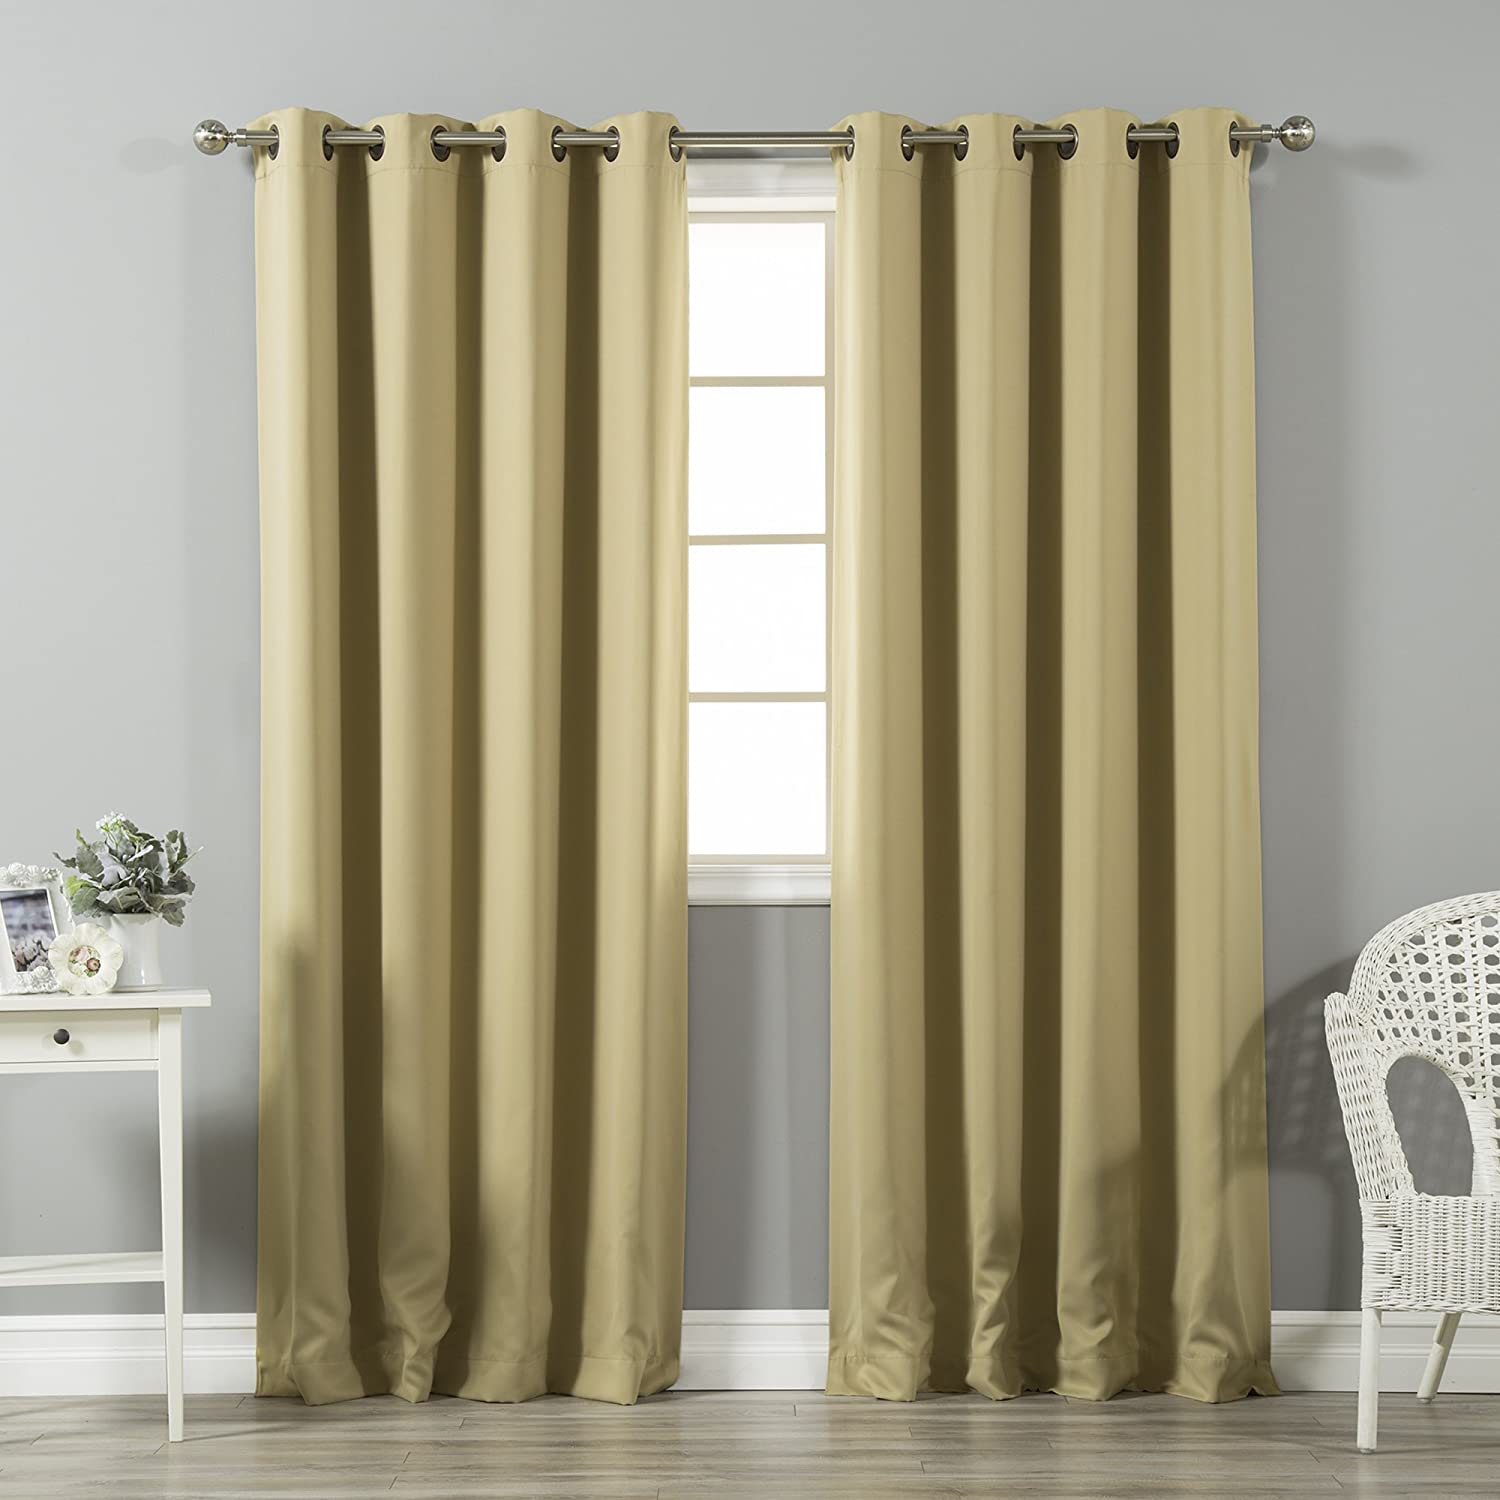 "Best Home Fashion Premium Thermal Insulated Blackout Curtains - Antique Bronze Grommet Top - Wheat - 52"" W x 120"" L - Tie Backs Included (Set of 2 Panels)"